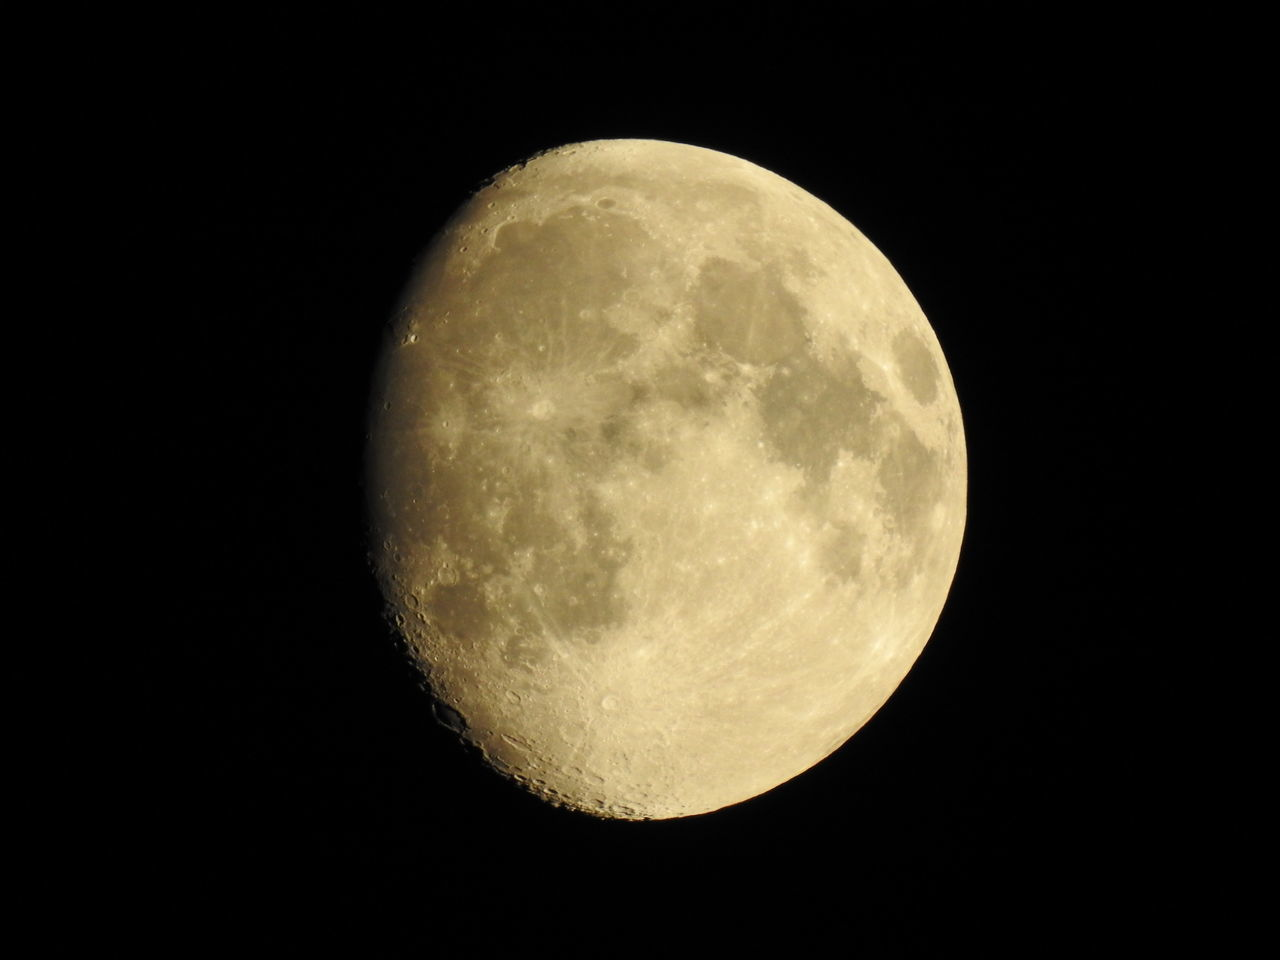 night, moon, astronomy, moon surface, beauty in nature, planetary moon, majestic, nature, scenics, tranquility, tranquil scene, no people, low angle view, space exploration, clear sky, outdoors, sky, half moon, space, close-up, satellite view